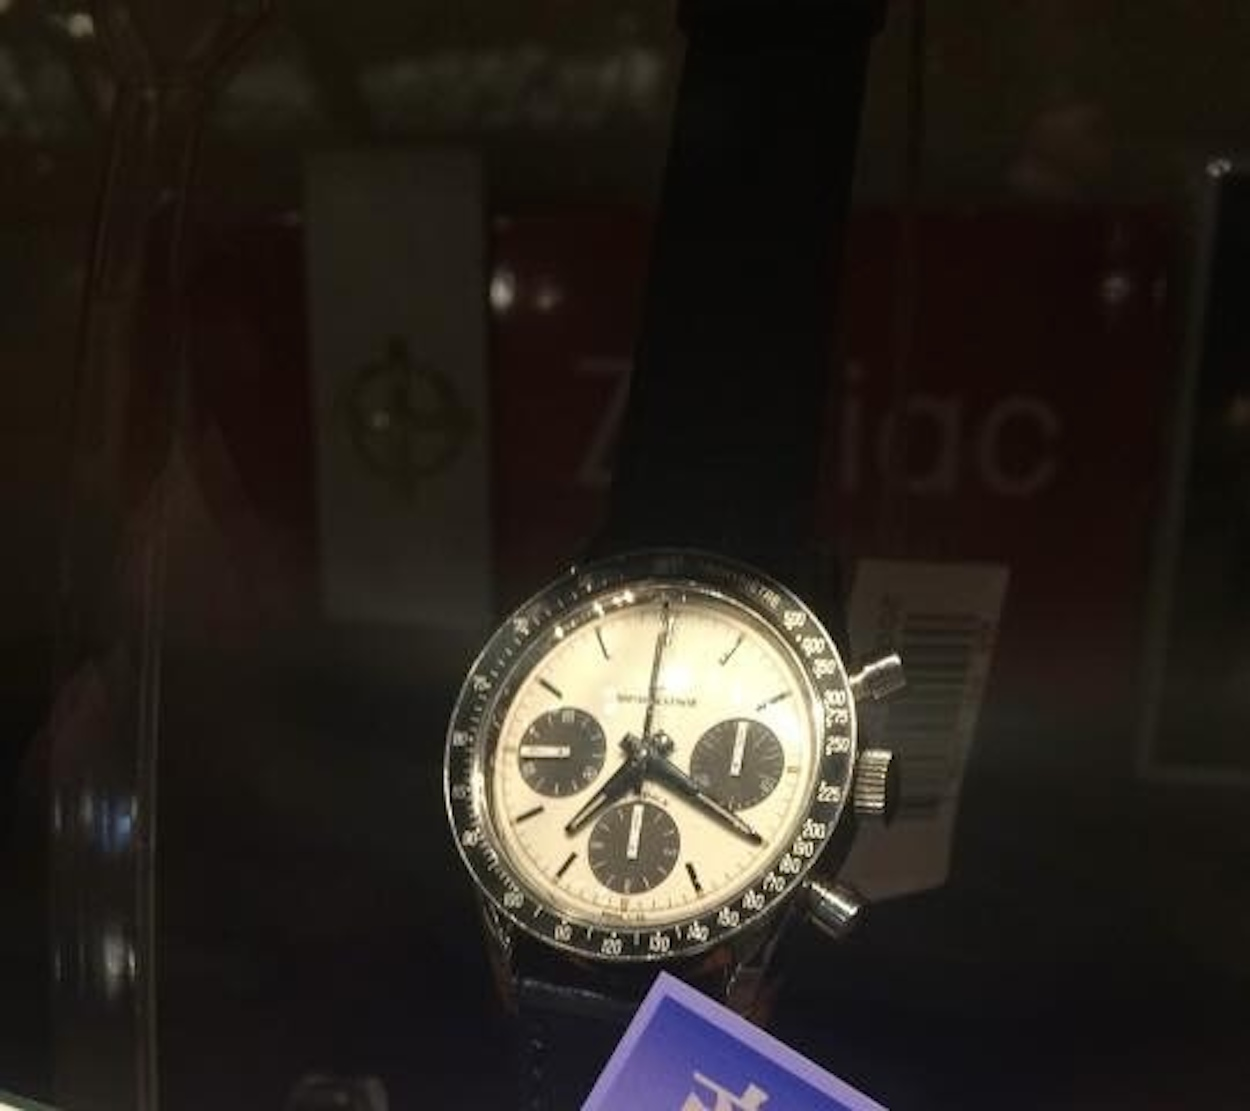 Forgive the grainy shot, but here was the Universal Geneve Compax Nina Rindt in the shop window earlier today...